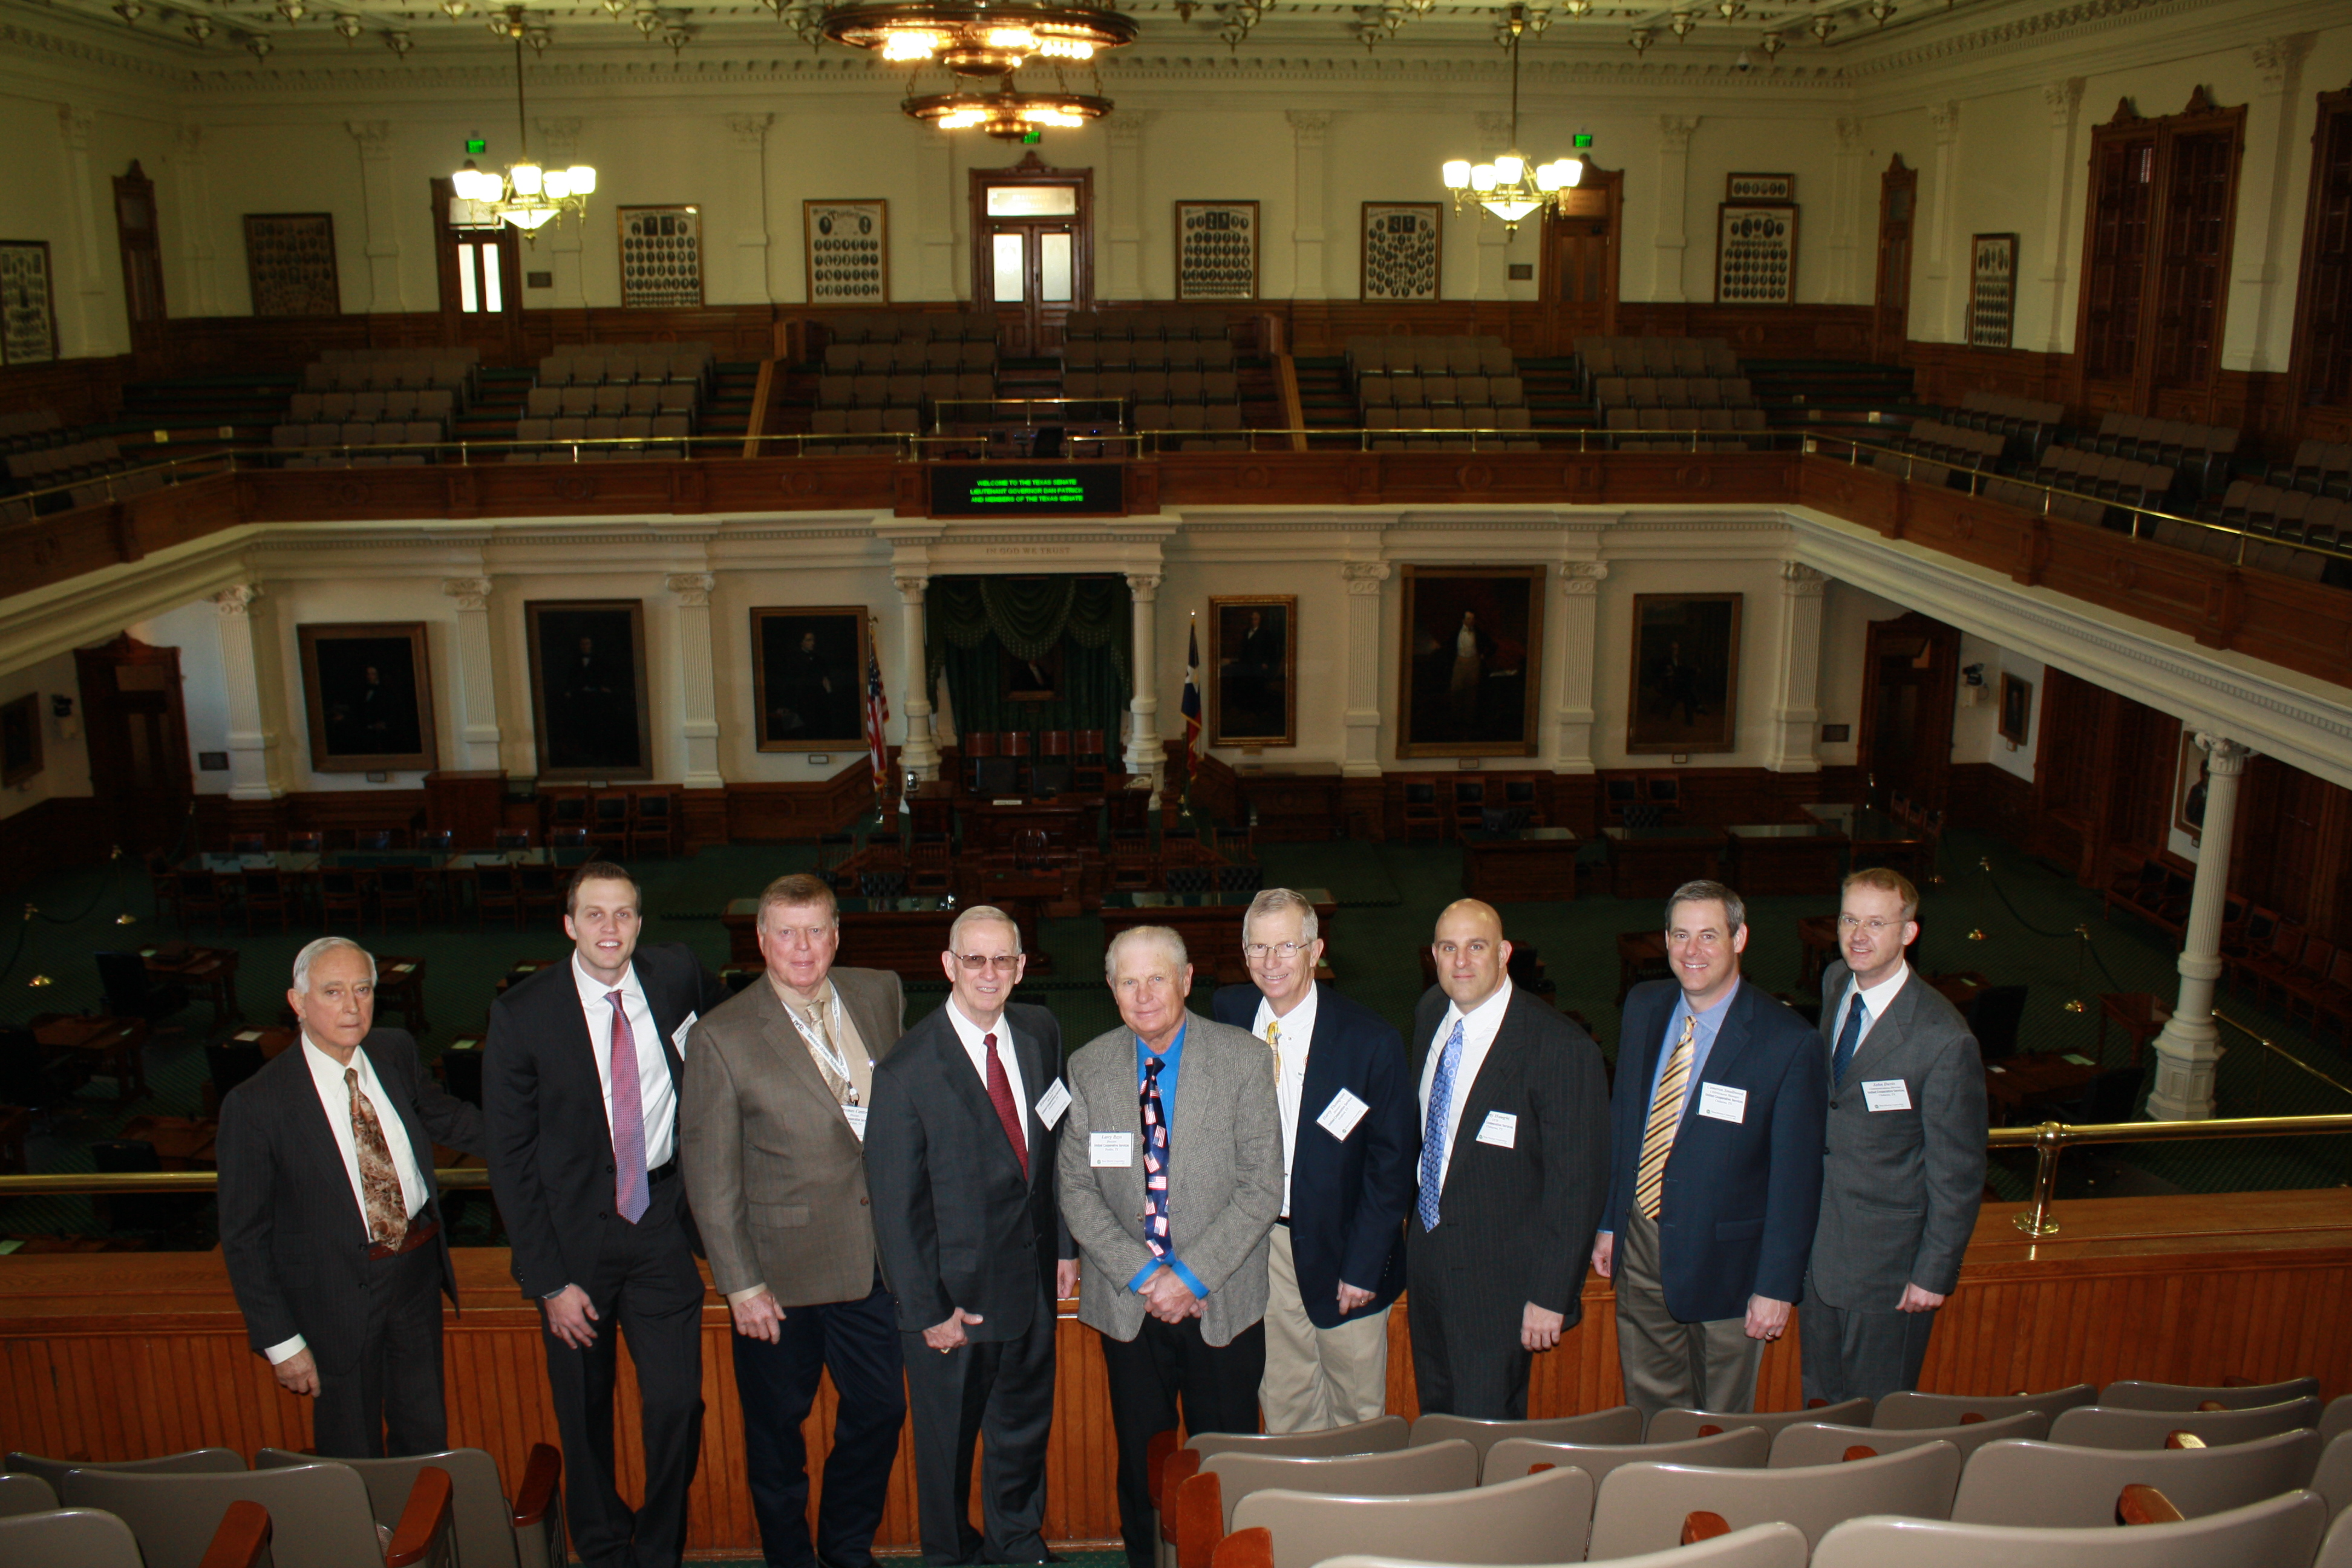 United leadership in Austin at the Capitol building's senate chambers.